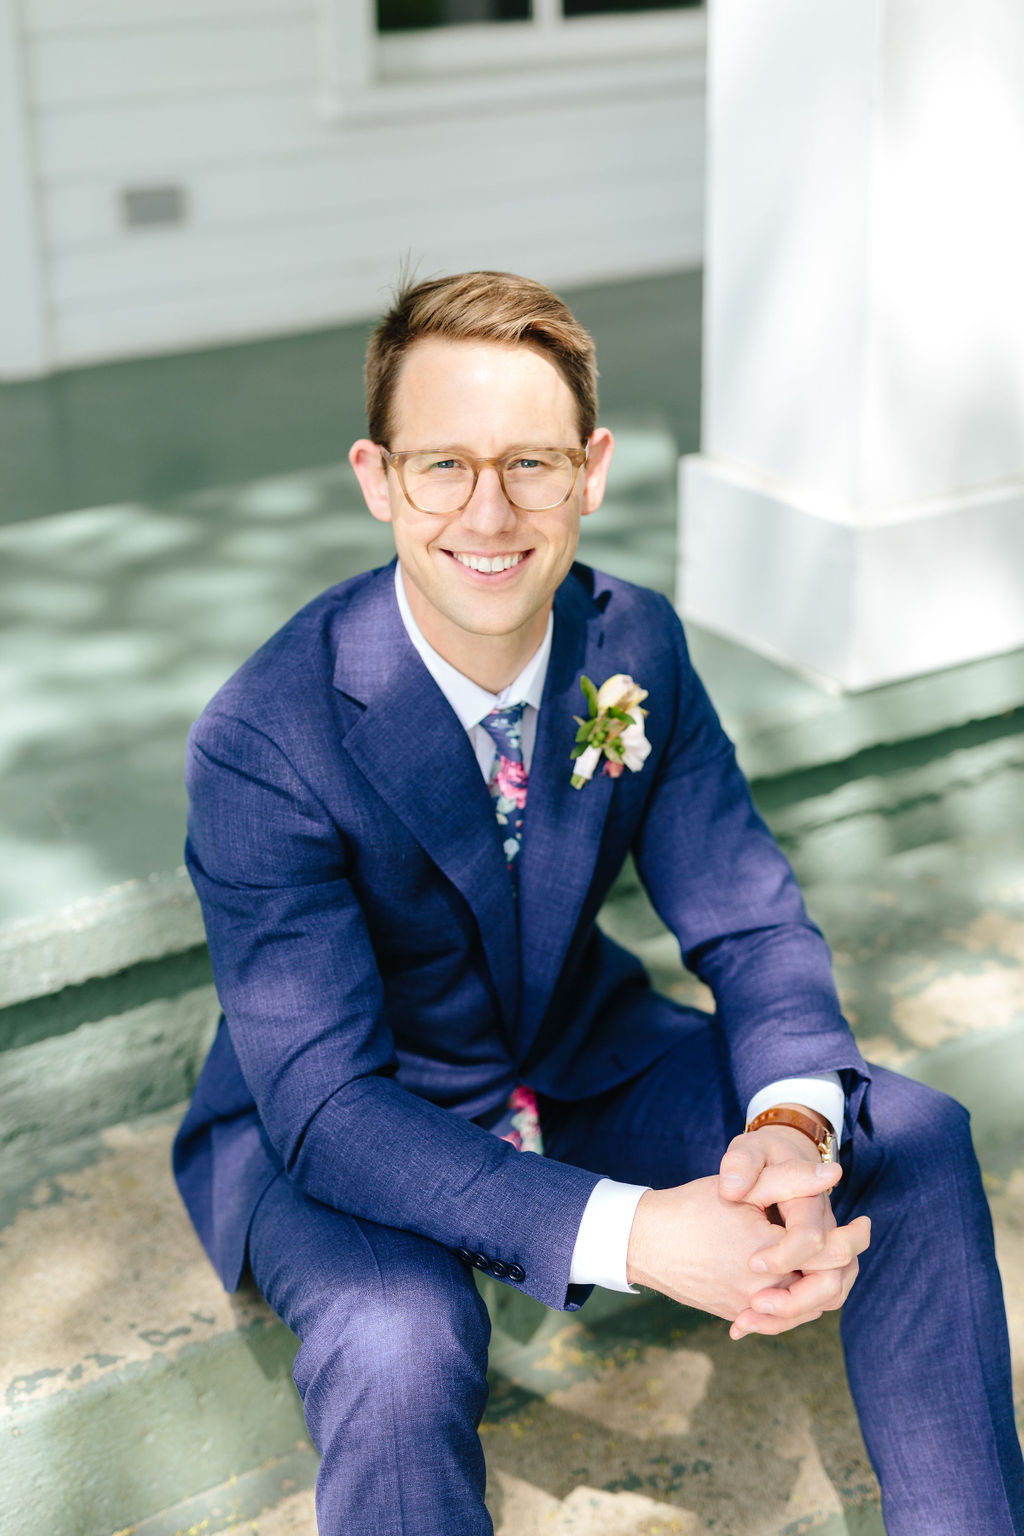 Portrait of groom with glasses - Preppy spring wedding at Zingerman's Cornman Farms - Leah E. Moss Designs - photo by Katie Grace Photography